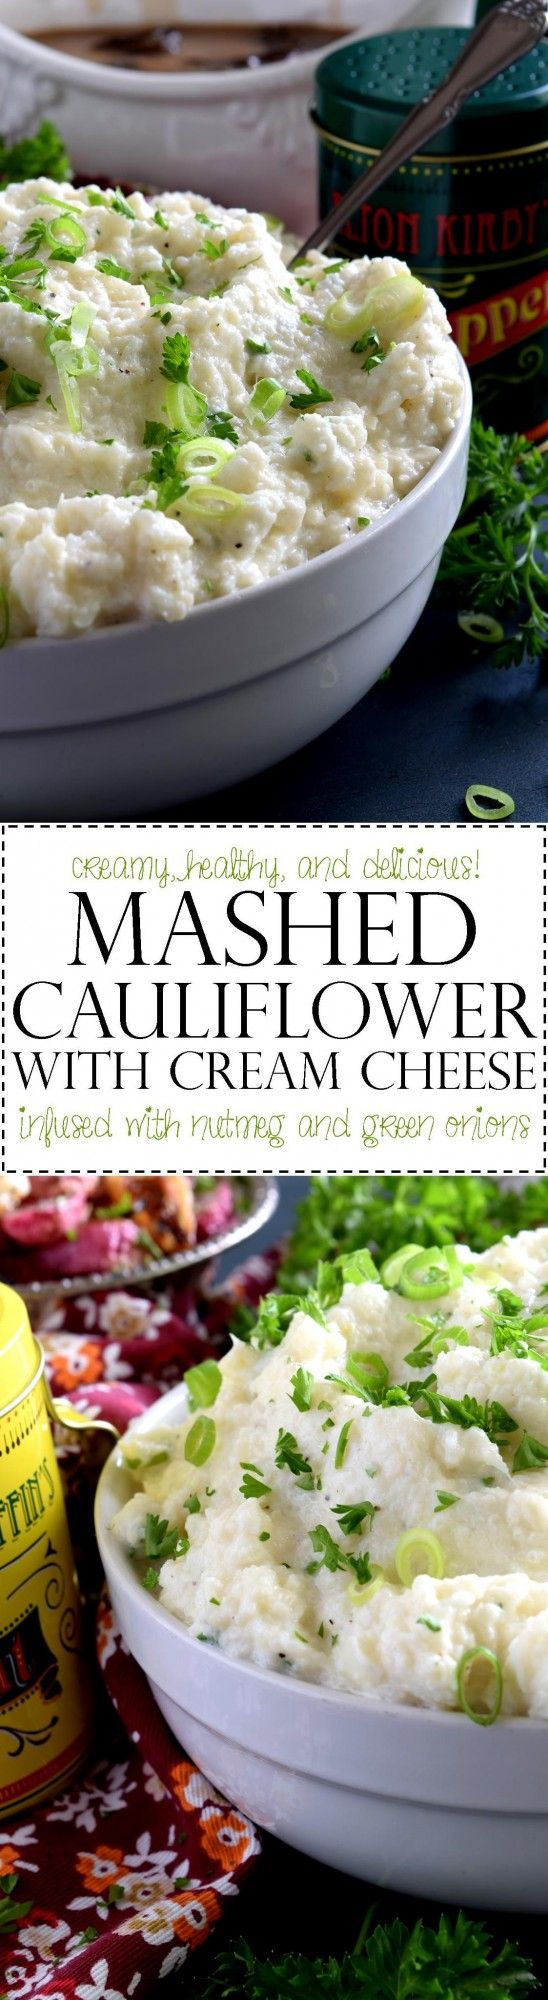 A mashed potato substitute that's health conscious and free of butter and heavy cream. Mashed Cauliflower with Cream Cheese is creamy, flavourful, and delicious. The addition of fresh green onions adds a crisp, refreshing taste.